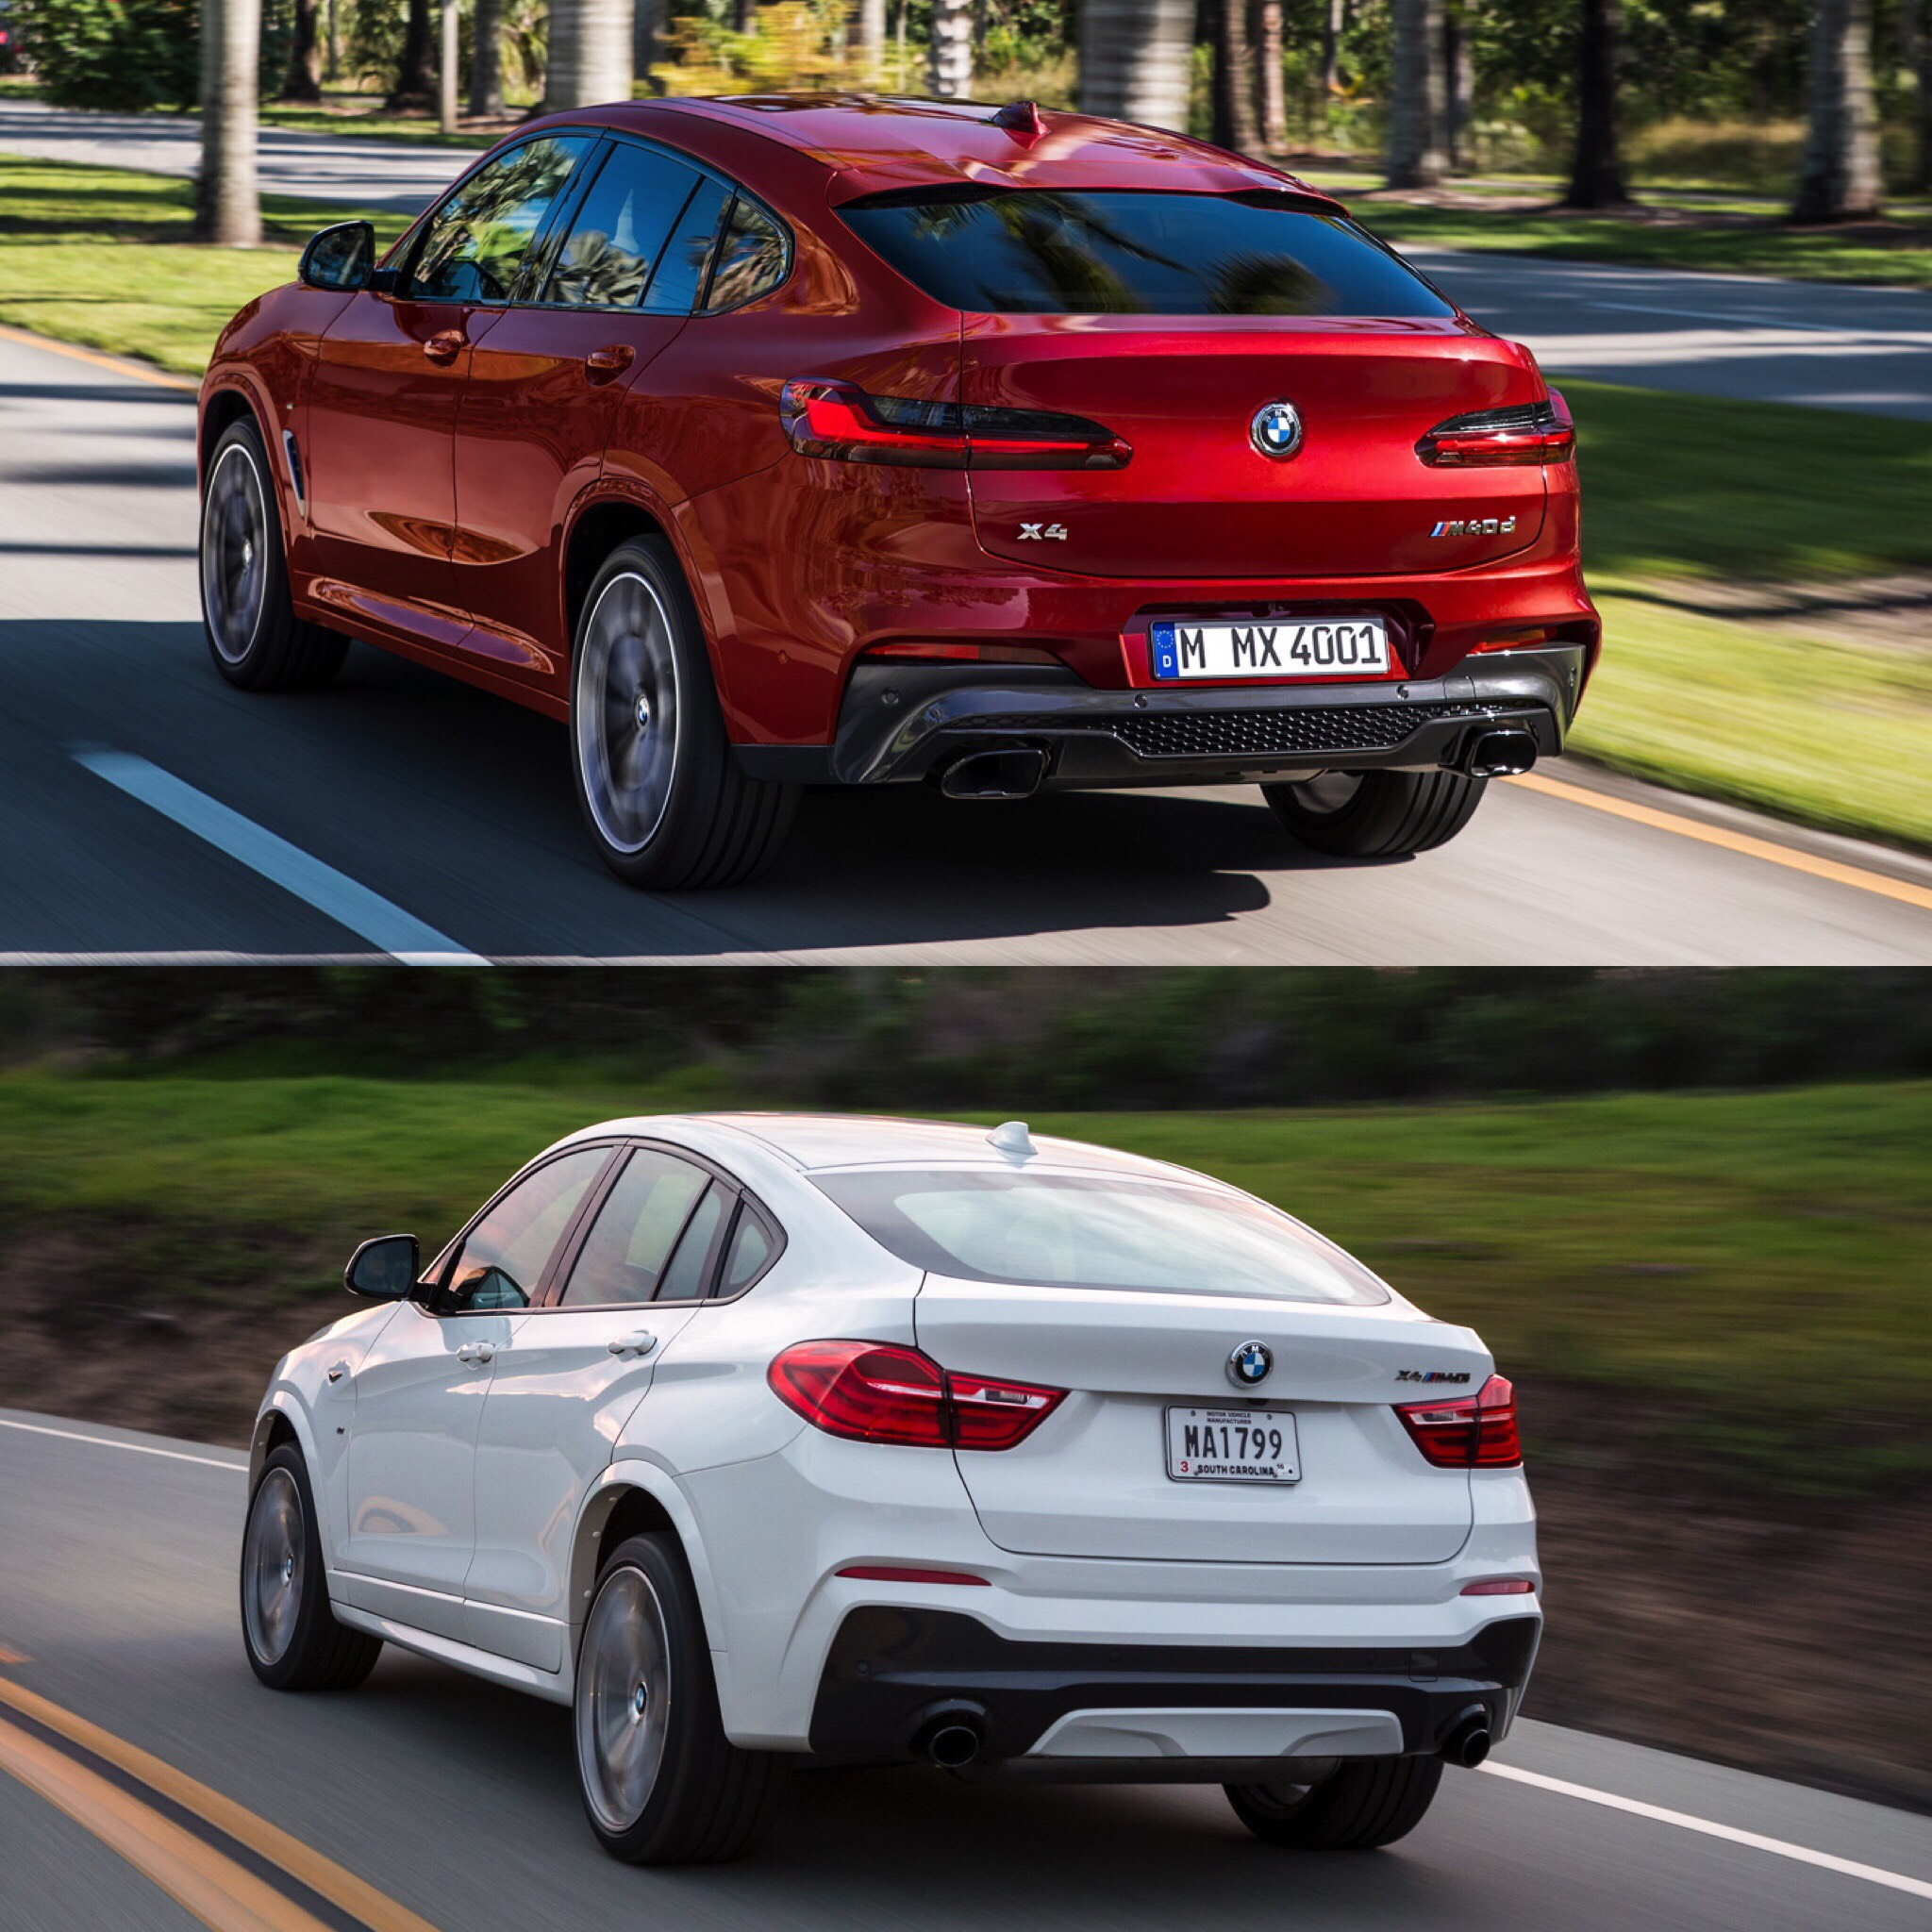 Bmw Xdrive35i Price: Bmw X6 Vs X4.2015 BMW X6 VS BMW X4 Visual Comparison